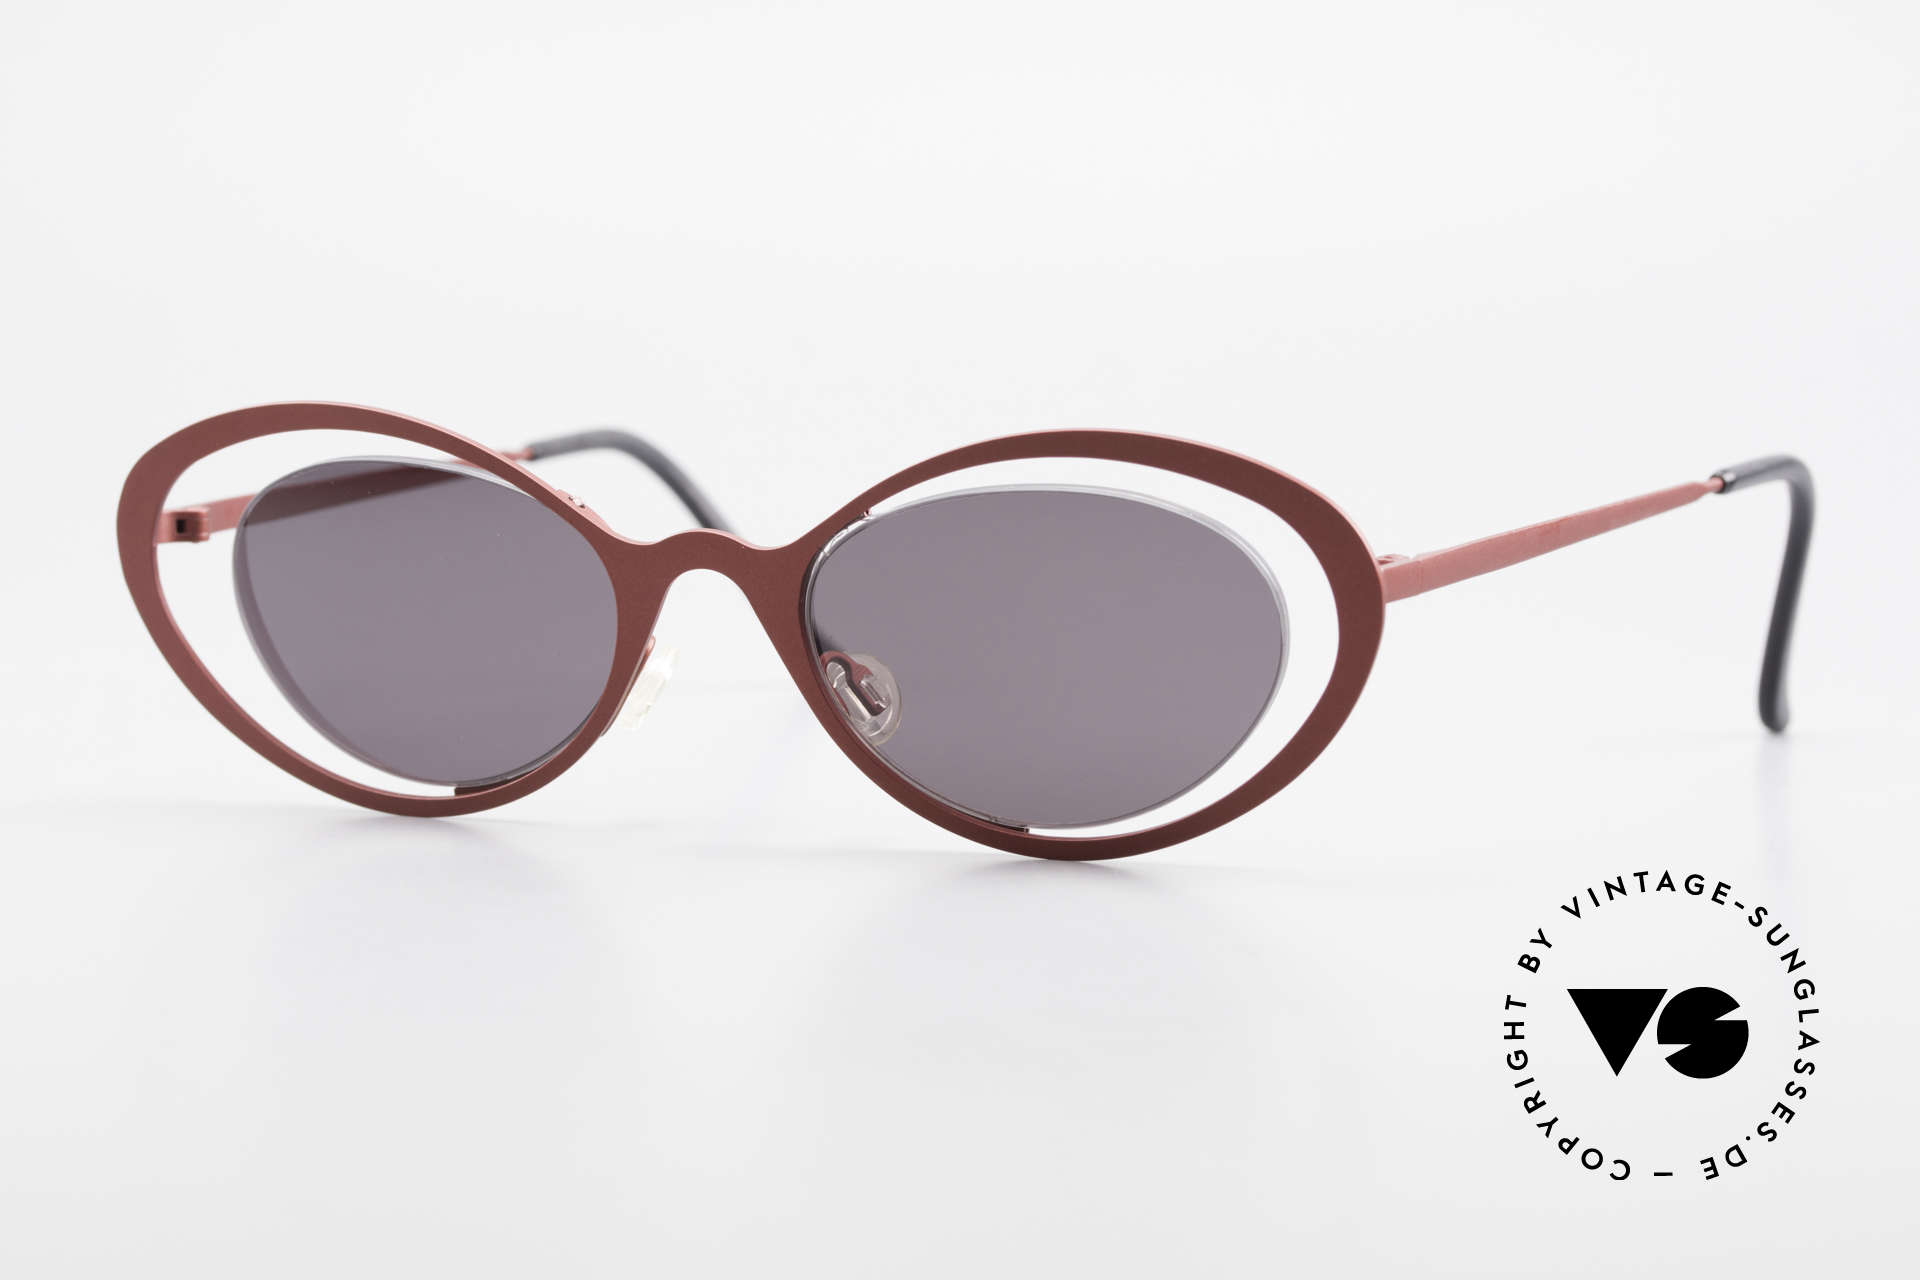 Theo Belgium LuLu Rimless Cateye Shades 90's, vintage THEO Belgium sunglasses from approx. 1997, Made for Women